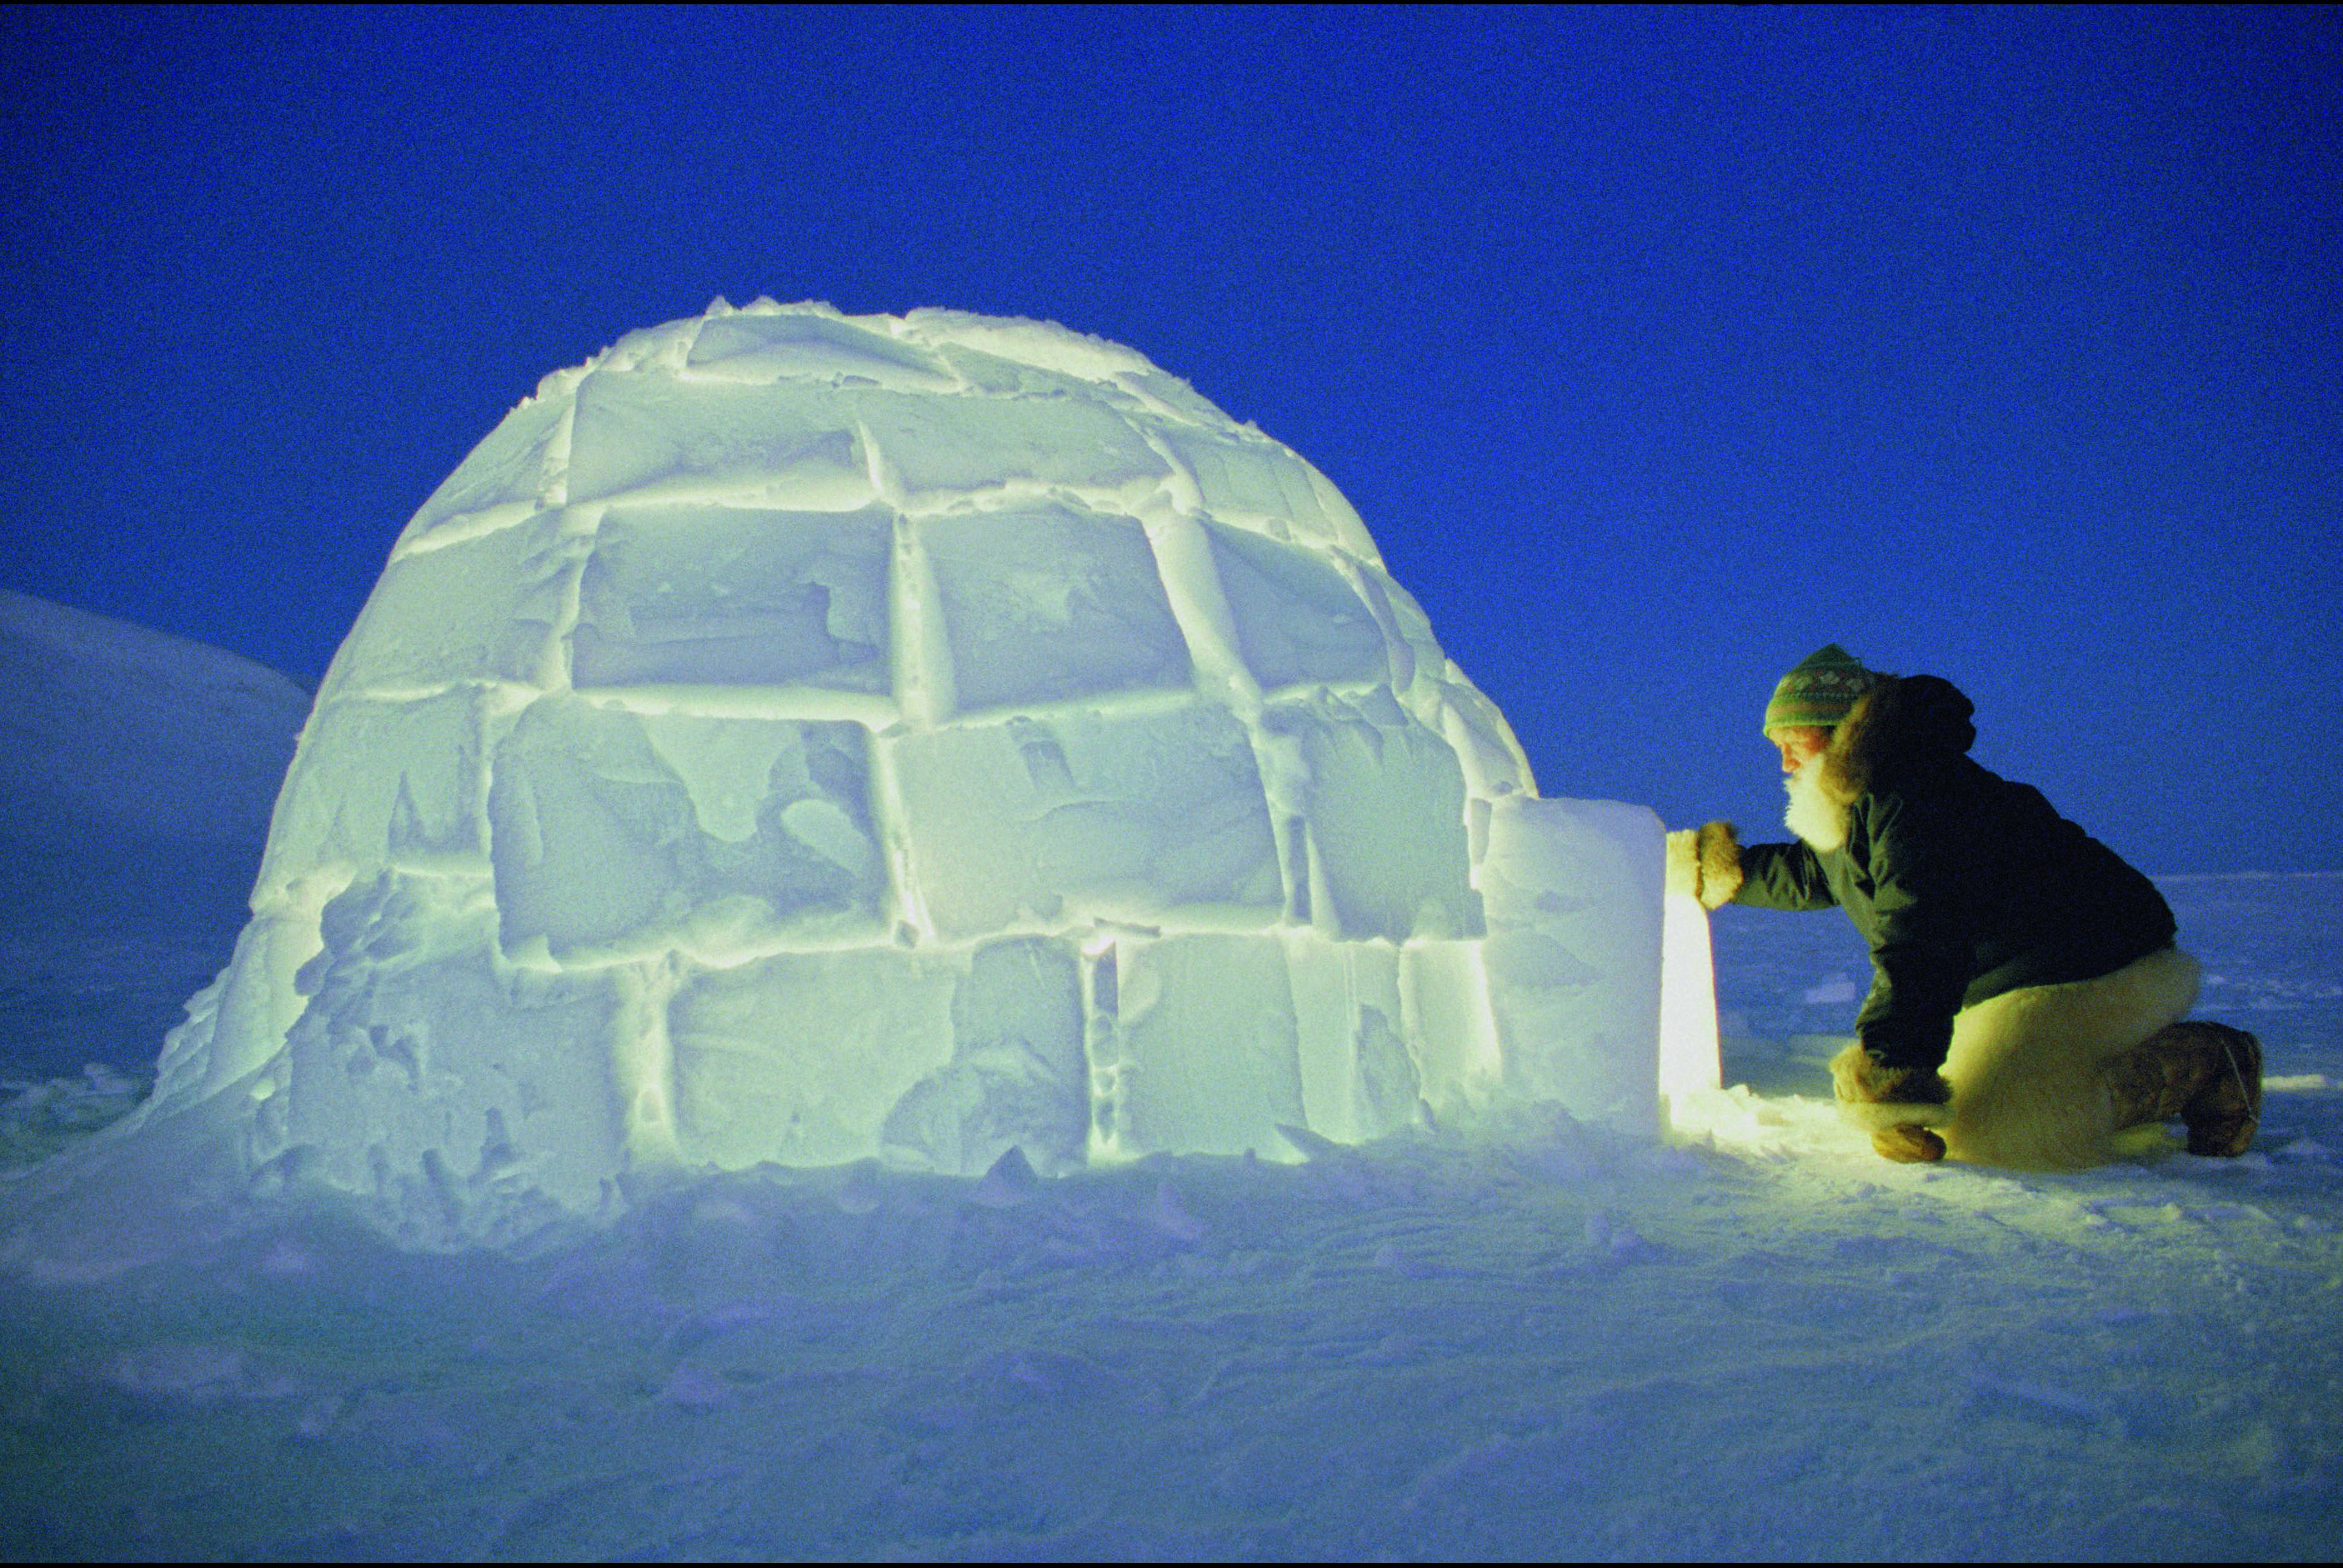 Build your own igloo